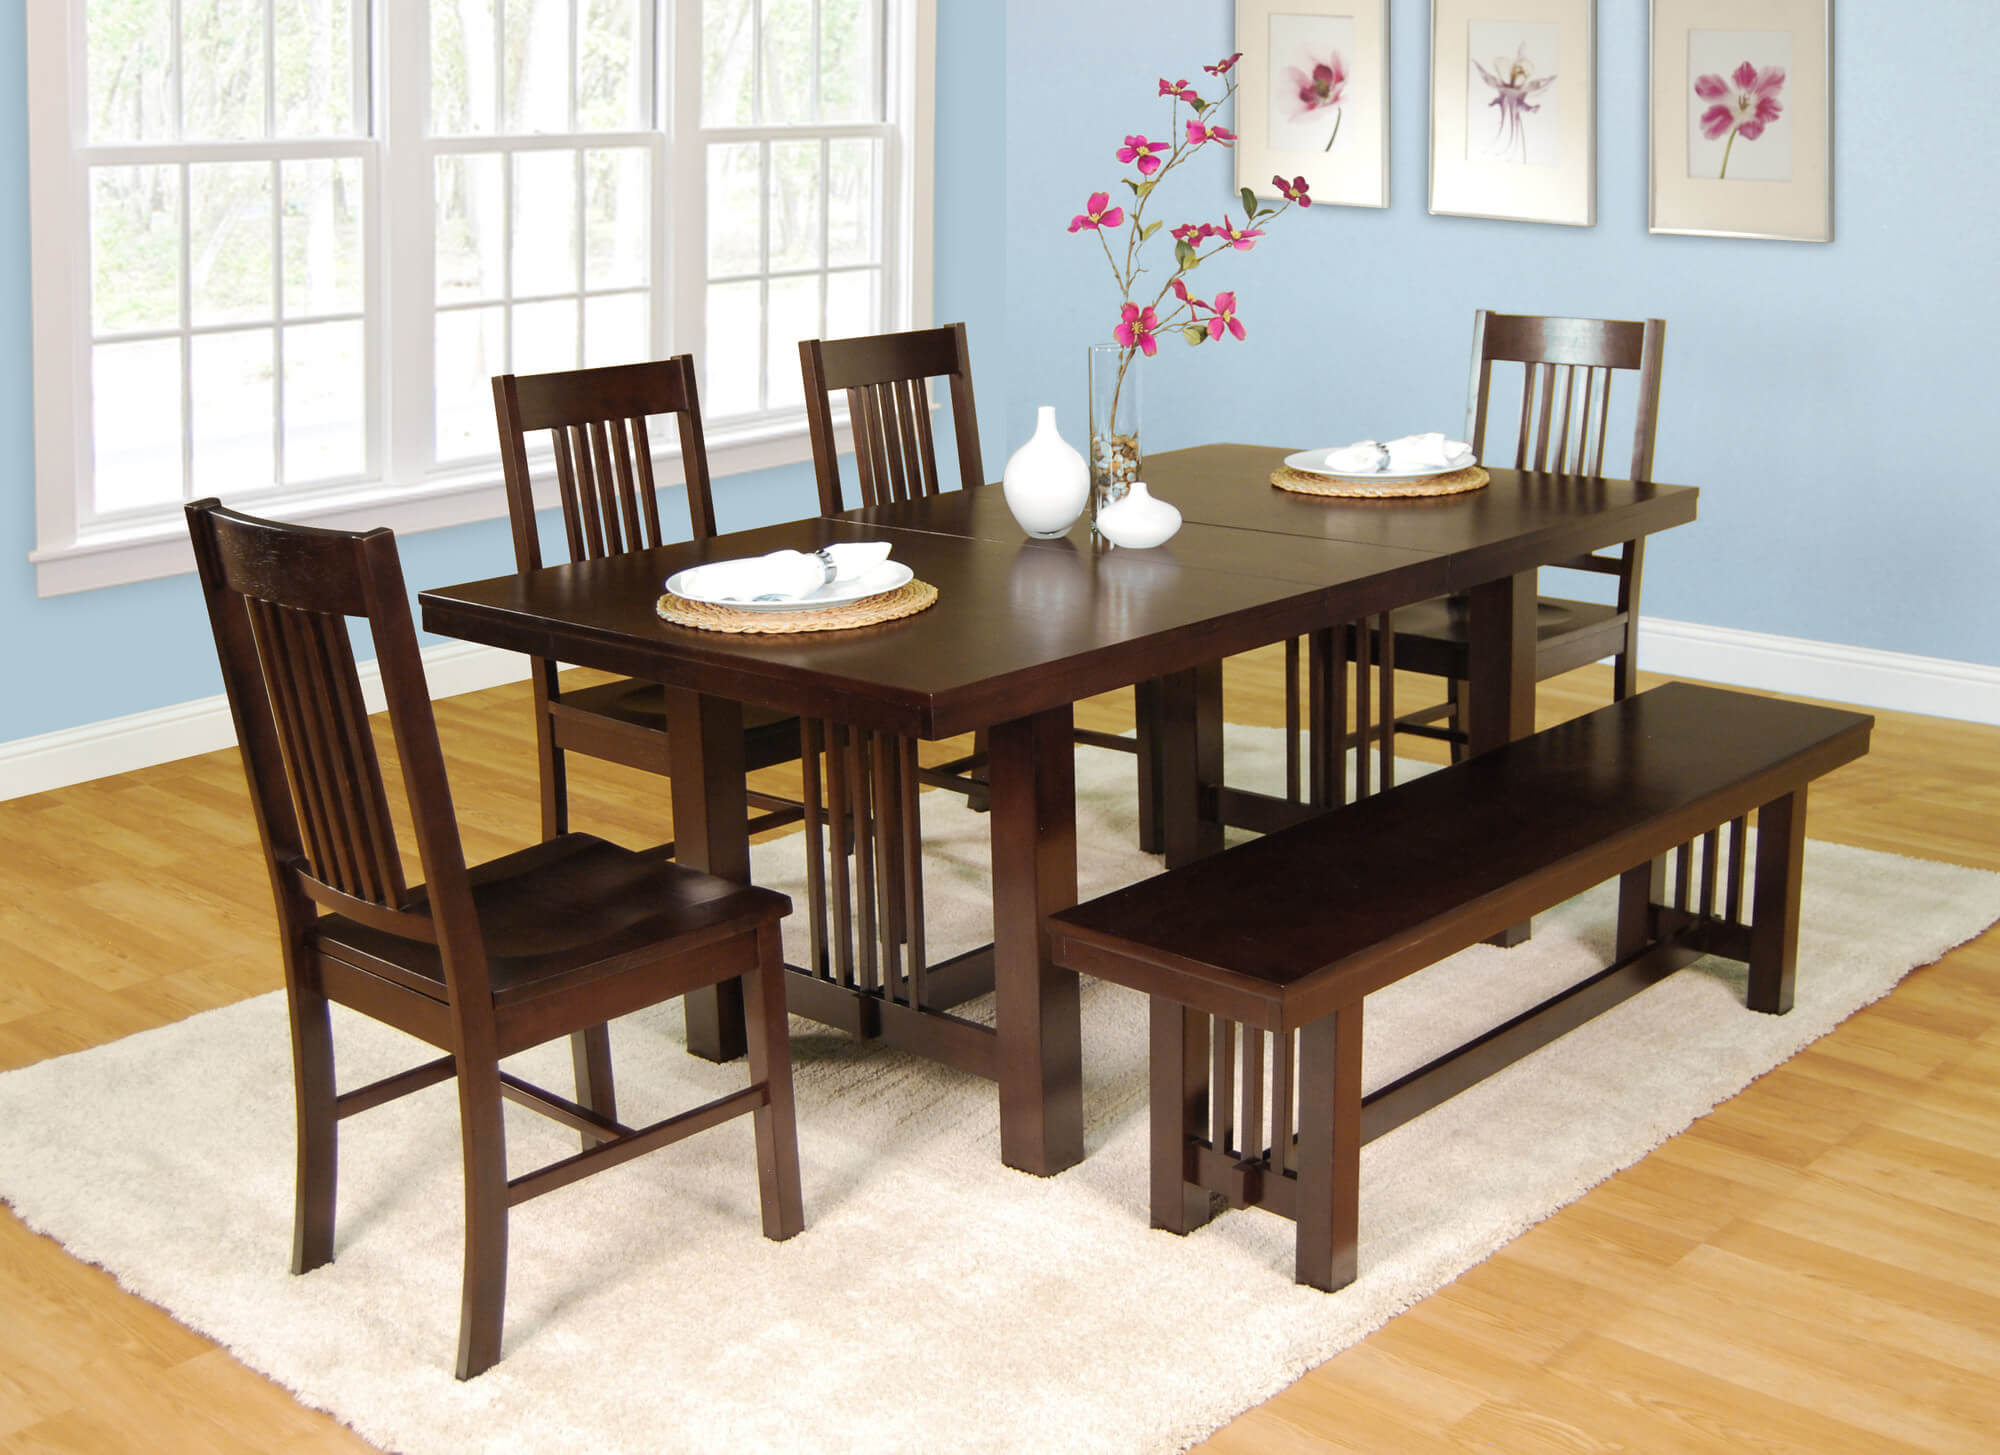 Big  Small Dining Room Sets With Bench Seating - Modern dining room table sets